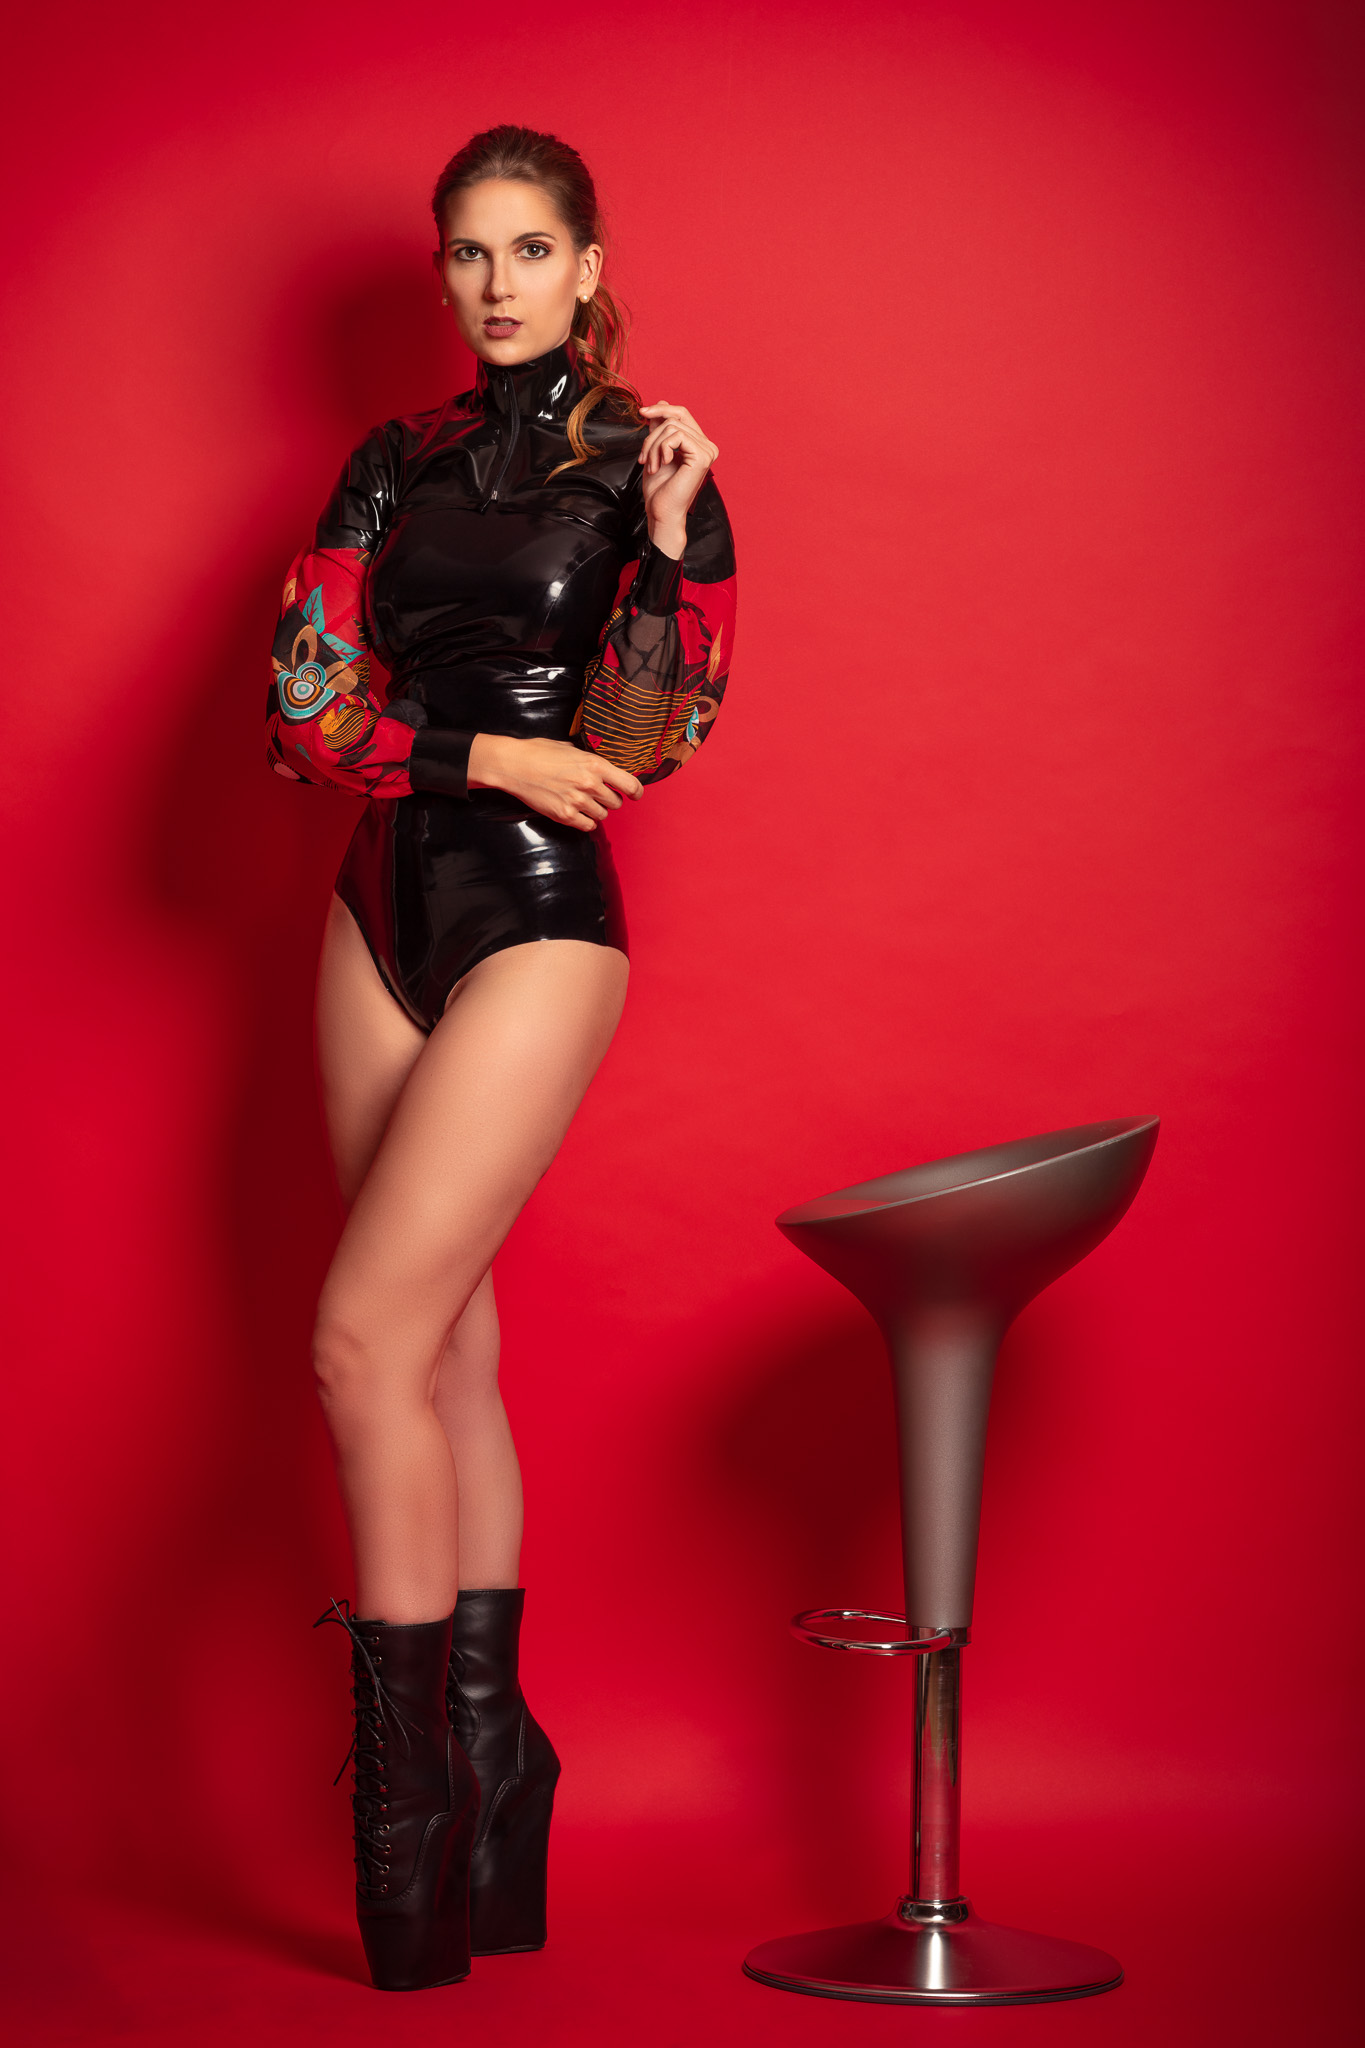 Magalie in Latex & Ballet Heels